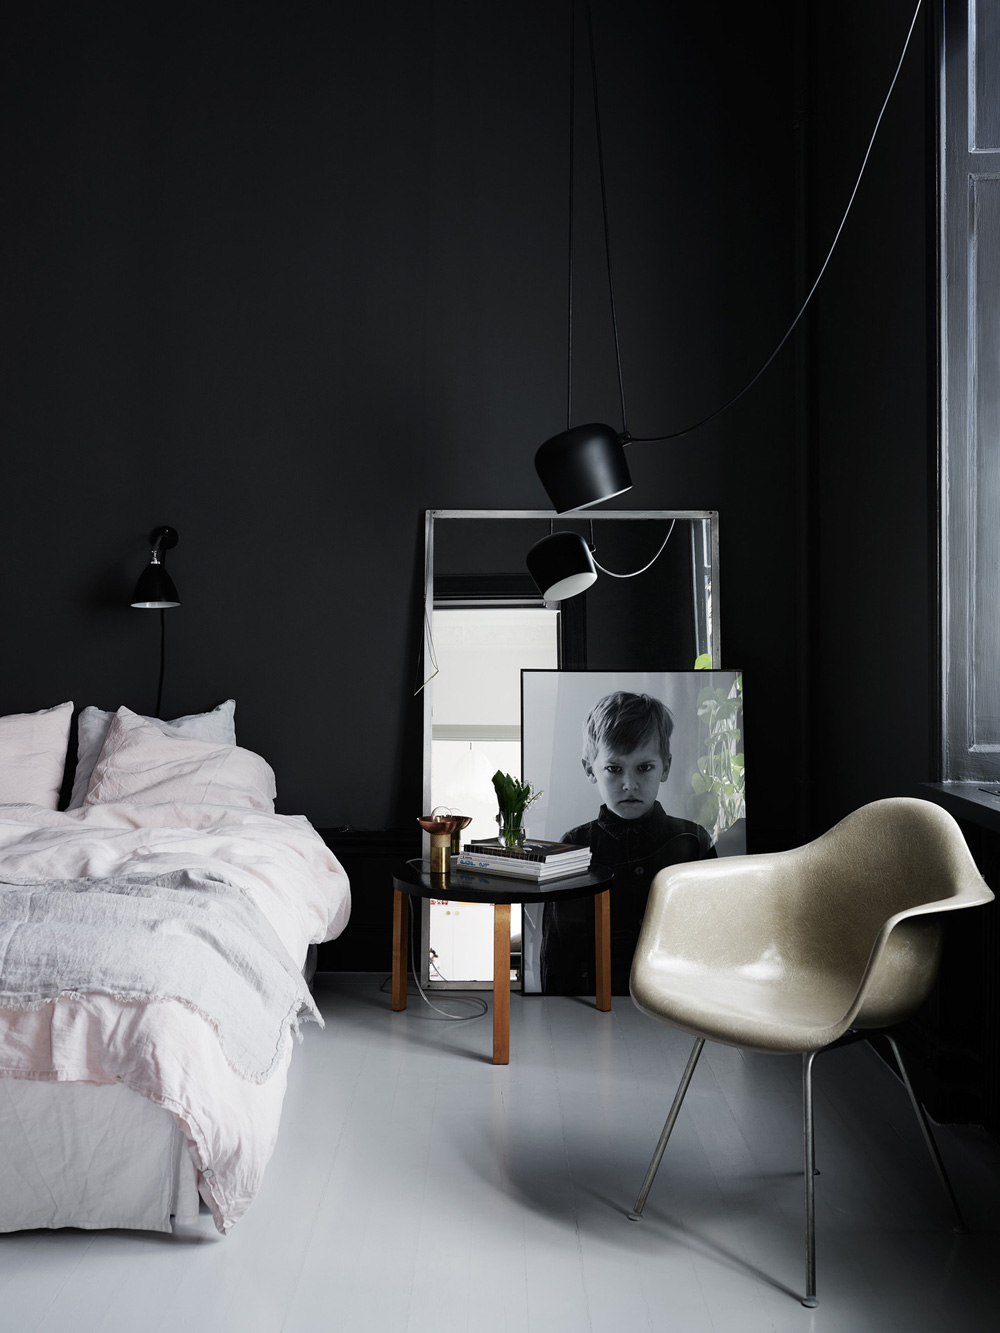 Oracle, Fox, Sunday, Sanctuary, The, Darker, Side, Black, Bedroom, Wall, Art, Cosy, Bed